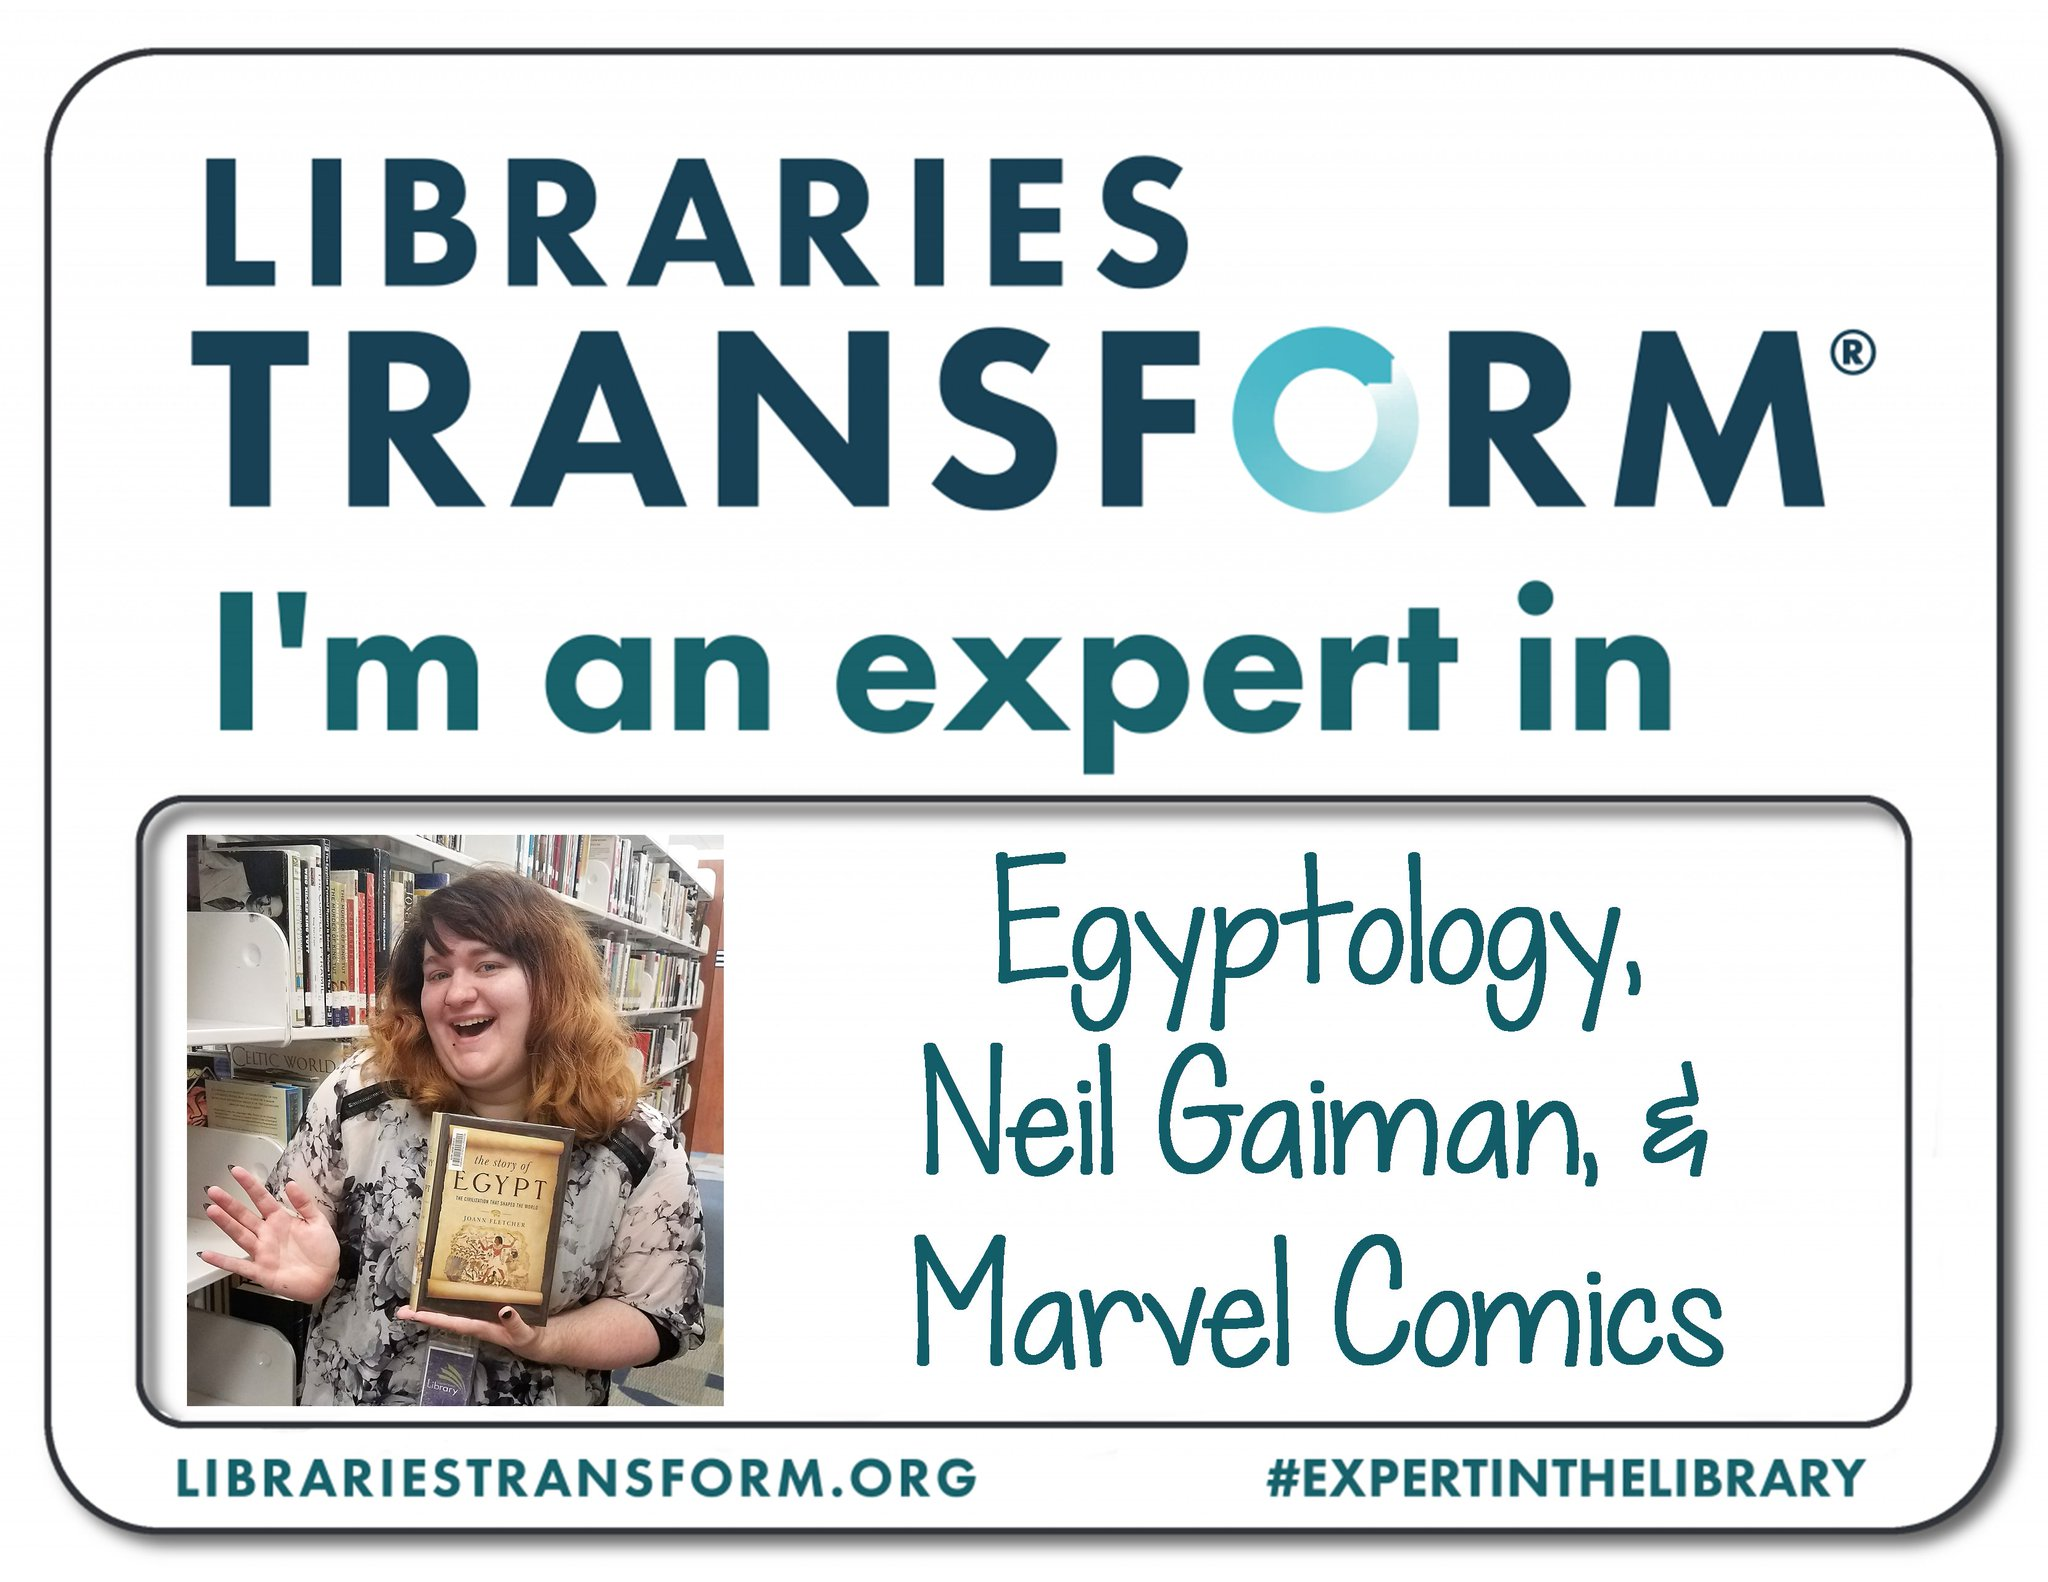 Celebrate #NationalLibraryWeek with us! Meet Olivia, an #ExpertInTheLibrary at KPL. https://t.co/FSBvc5NGrU